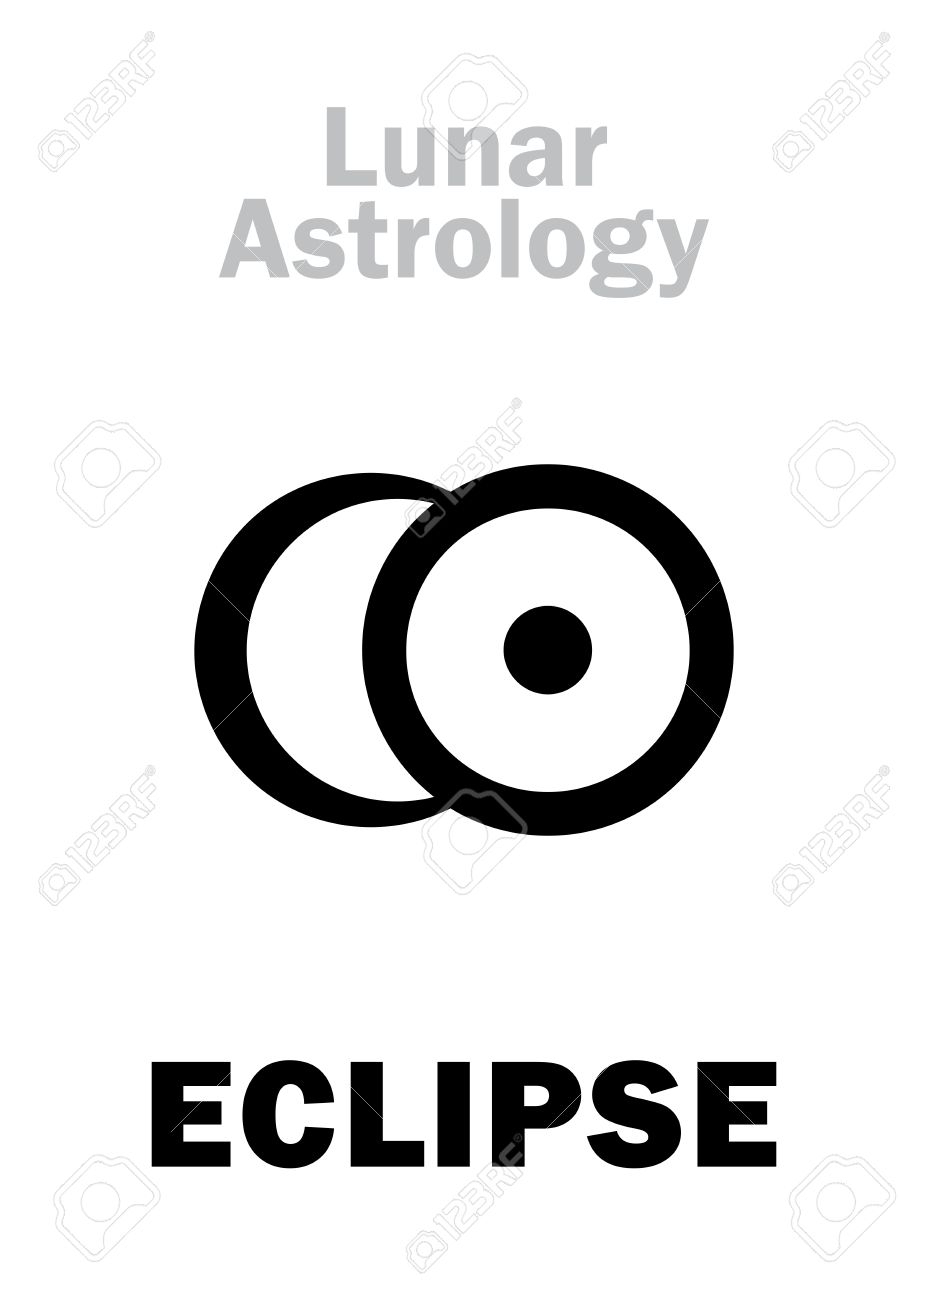 Astrology alphabet eclipse conjunction of the sun and moon astrology alphabet eclipse conjunction of the sun and moon astronomical phenomenon biocorpaavc Images